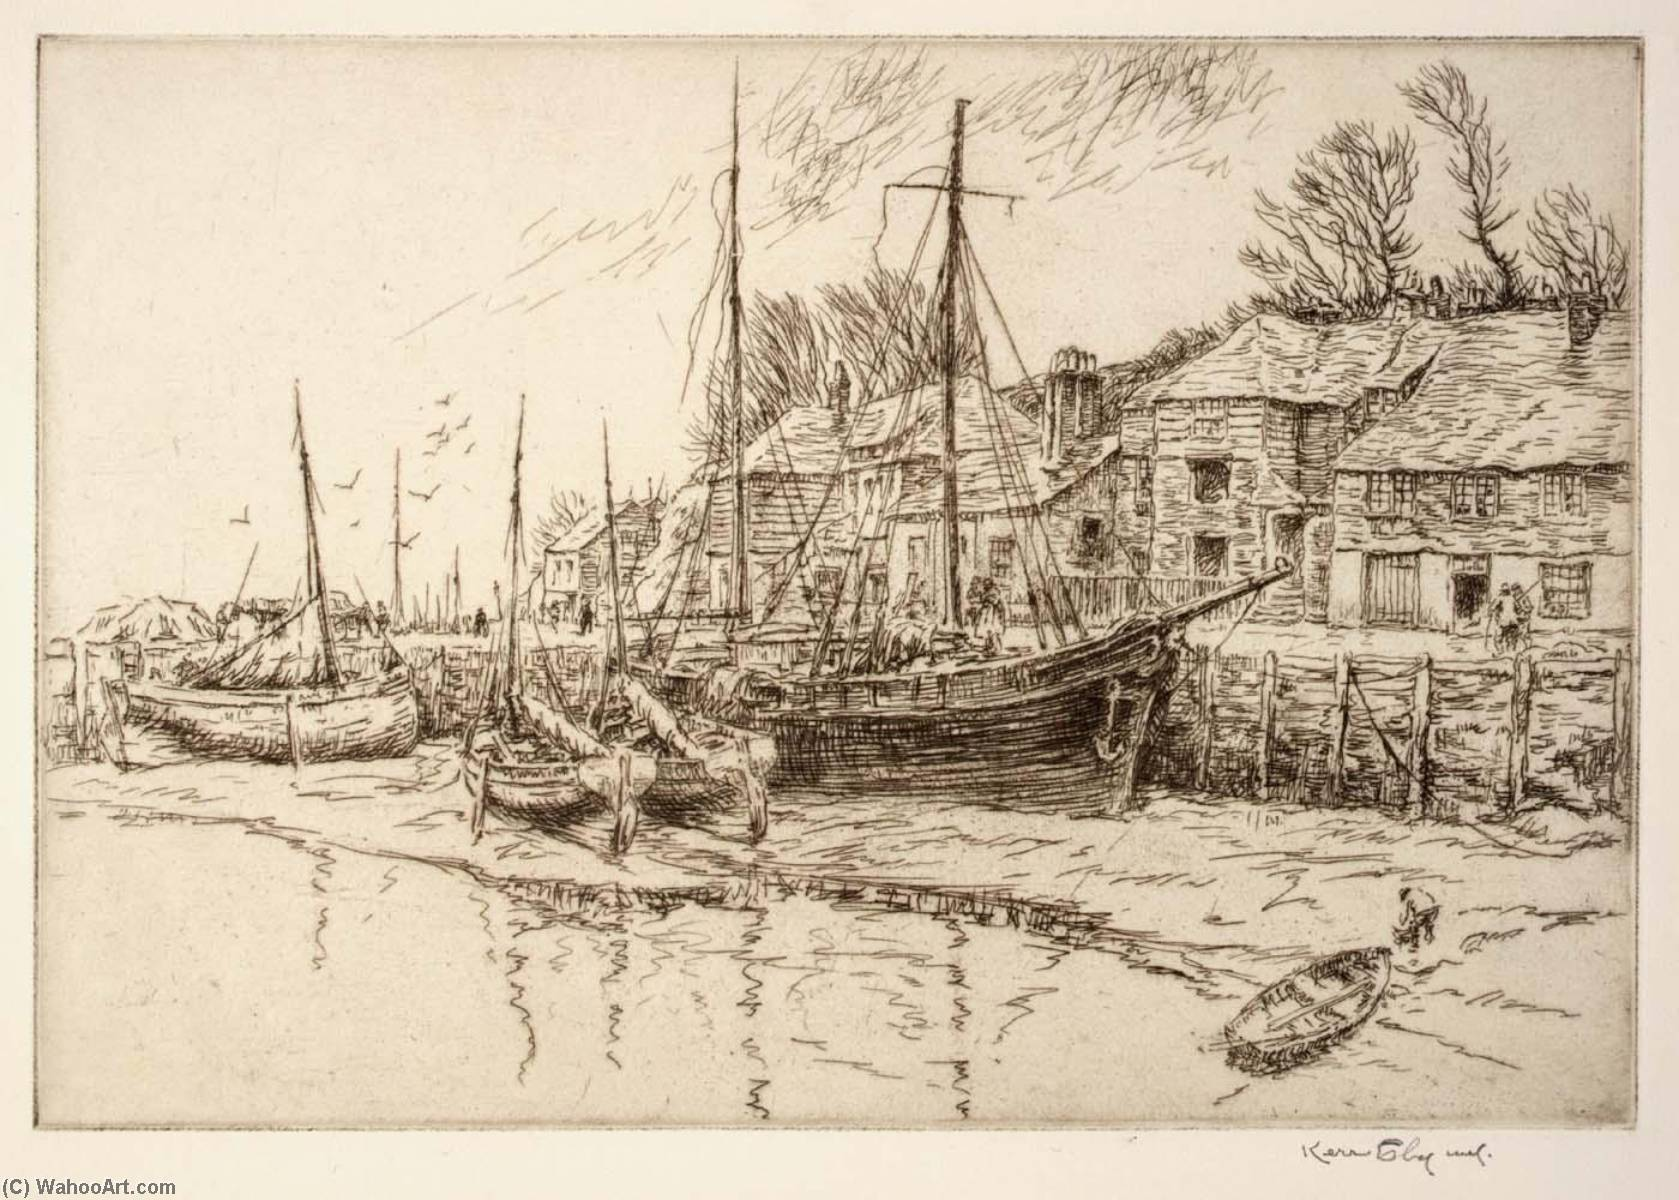 Boat Houses, 1940 by Kerr Eby | Art Reproduction | WahooArt.com